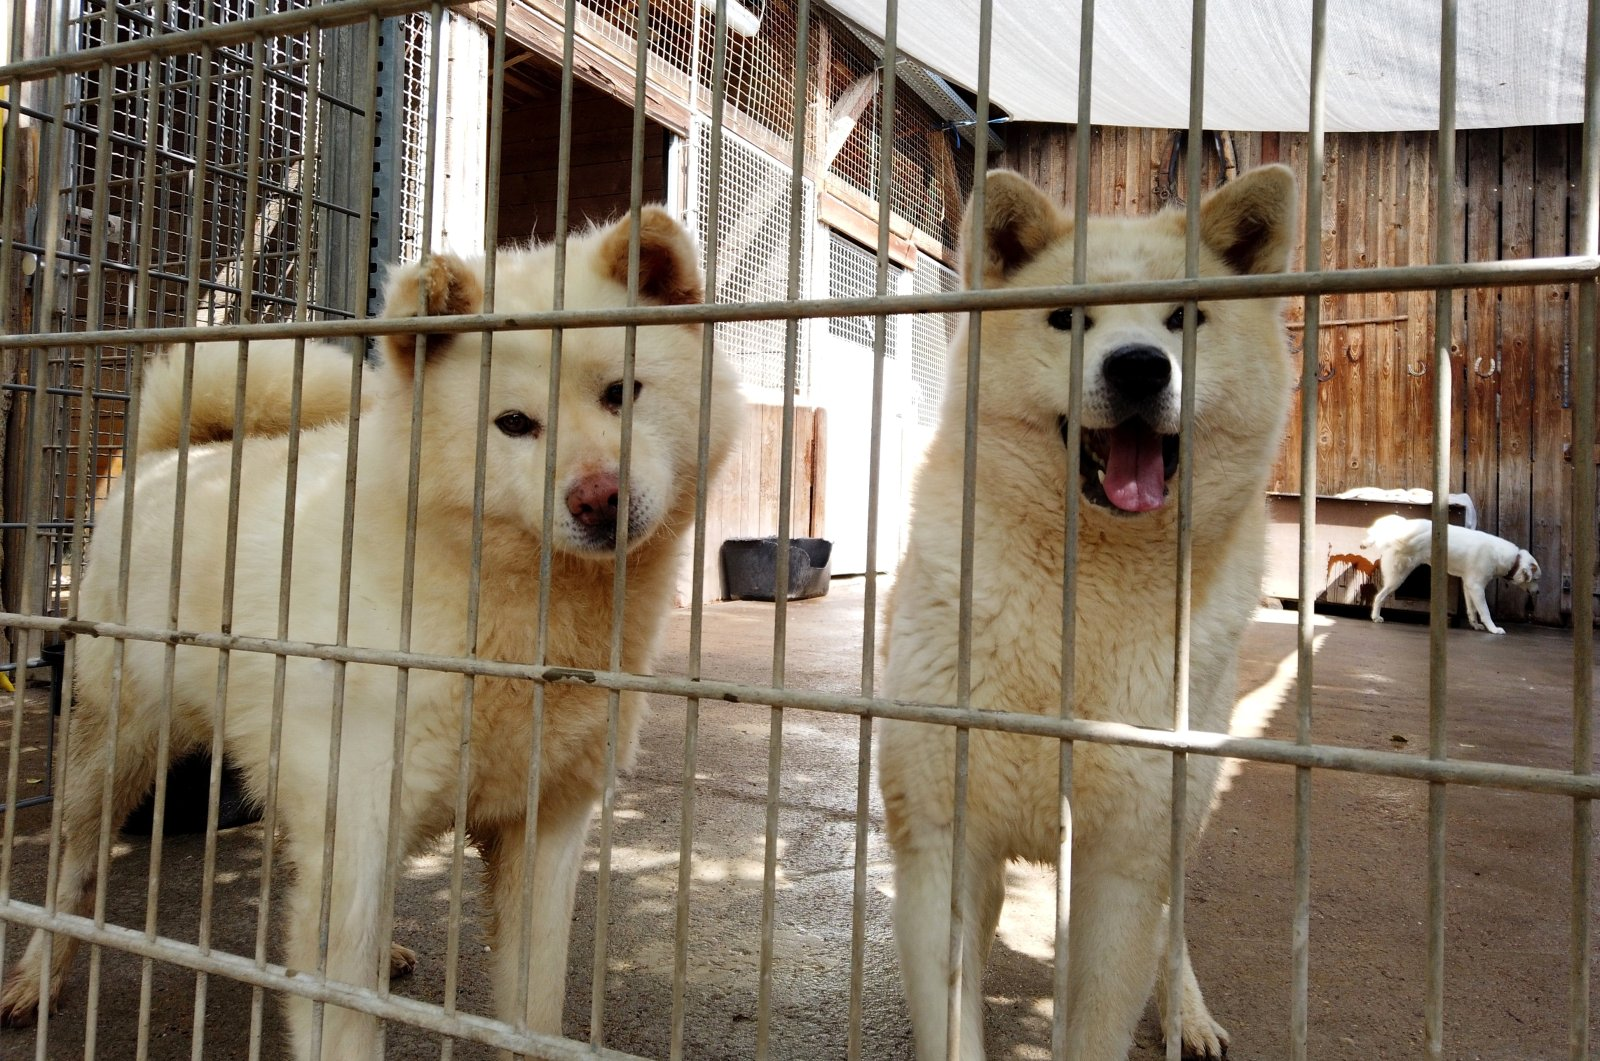 Dogs are pictured in an animal shelter in Reichelsheim, Germany, July 7, 2021. (Reuters Photo)